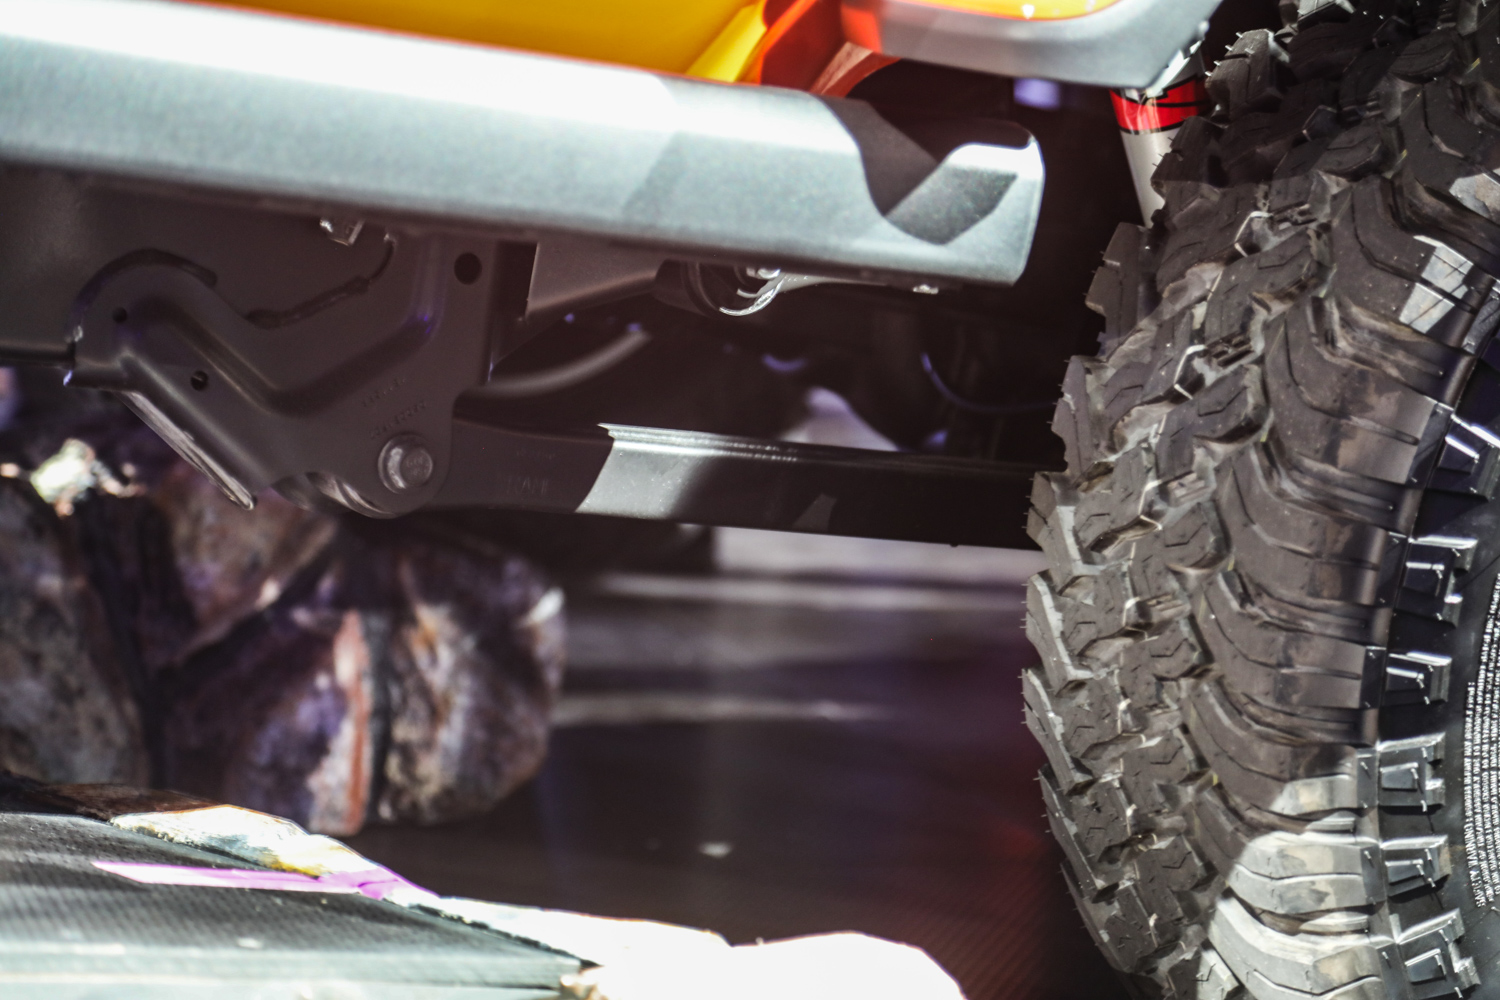 2020 Jeep Gladiator rear suspension